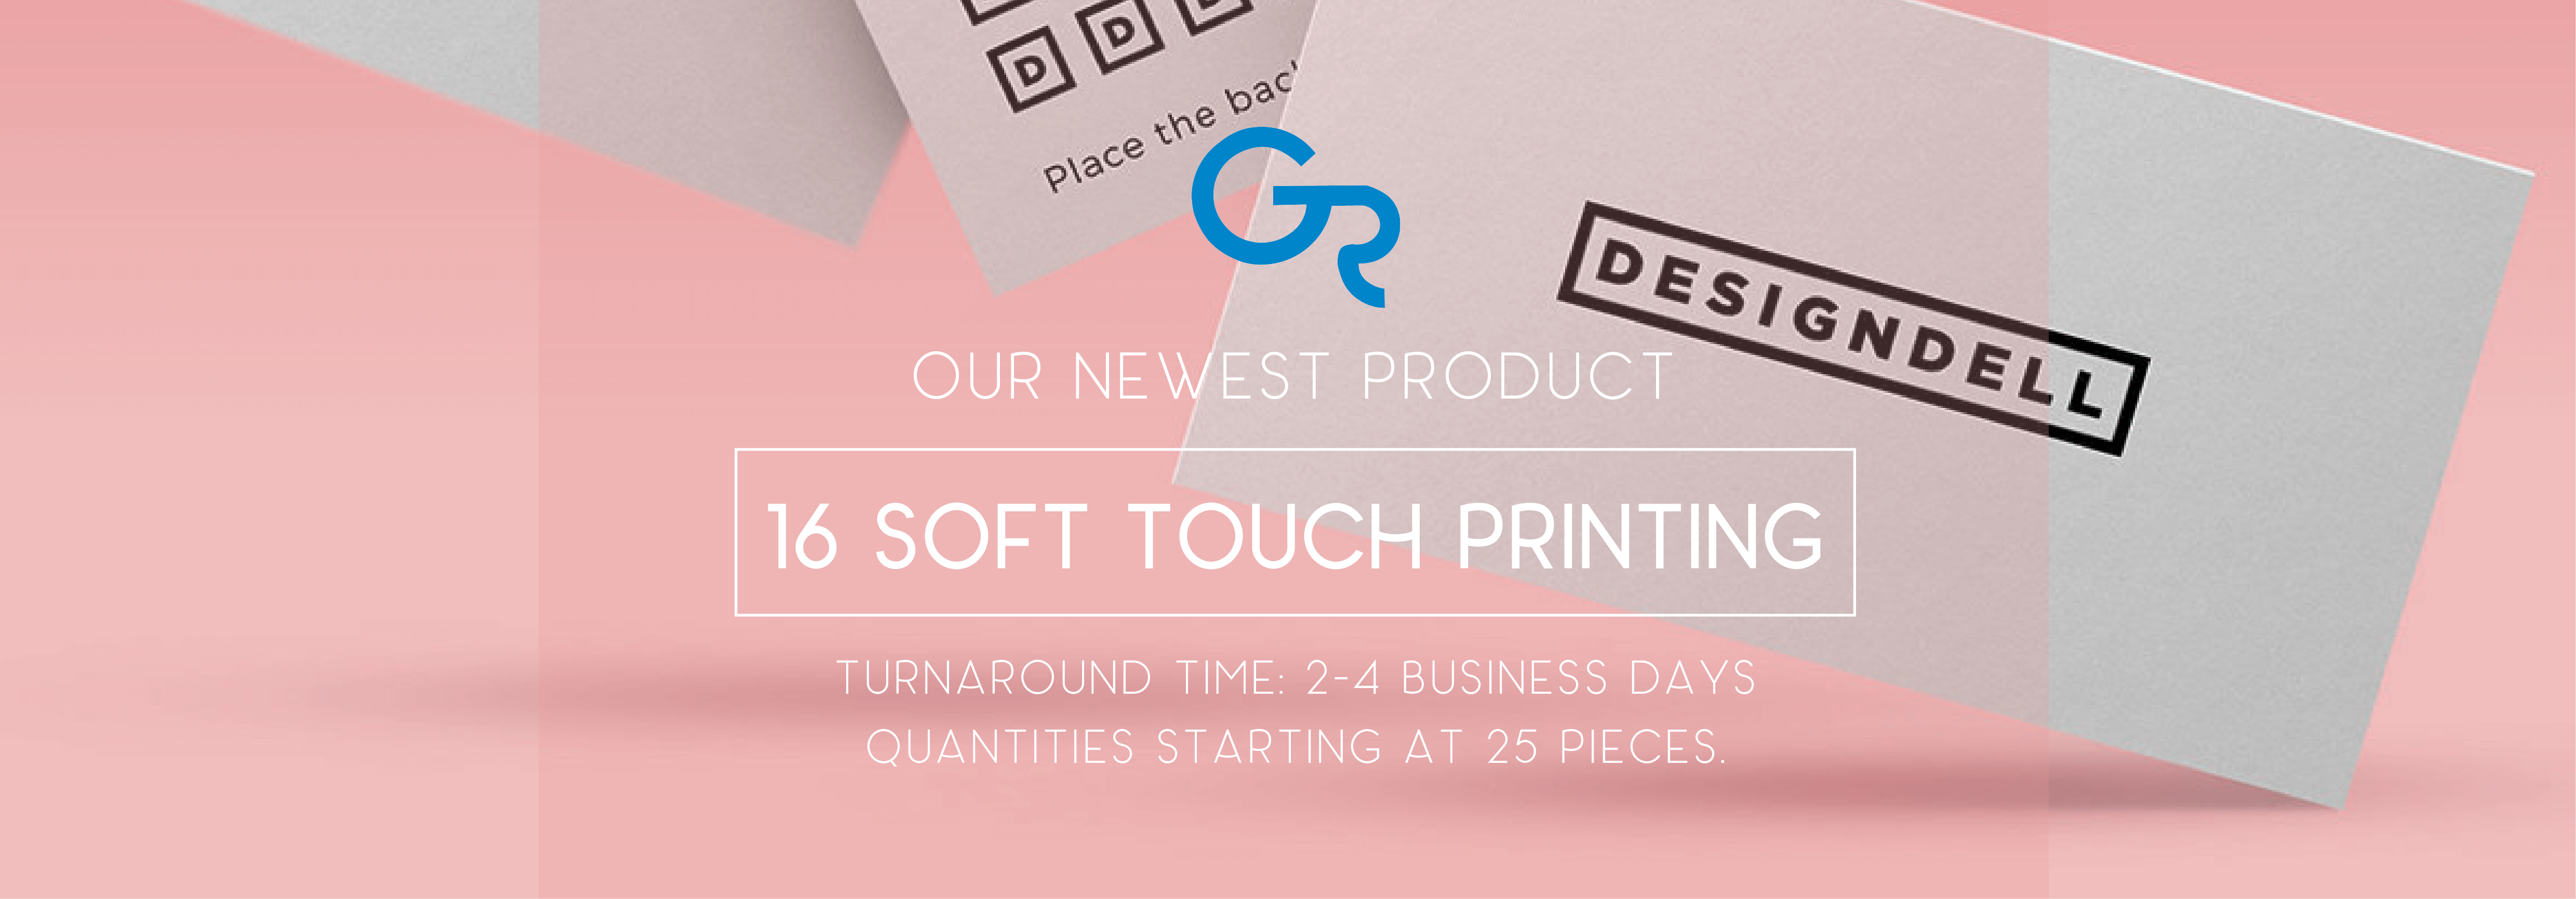 16pt Soft Touching Printing